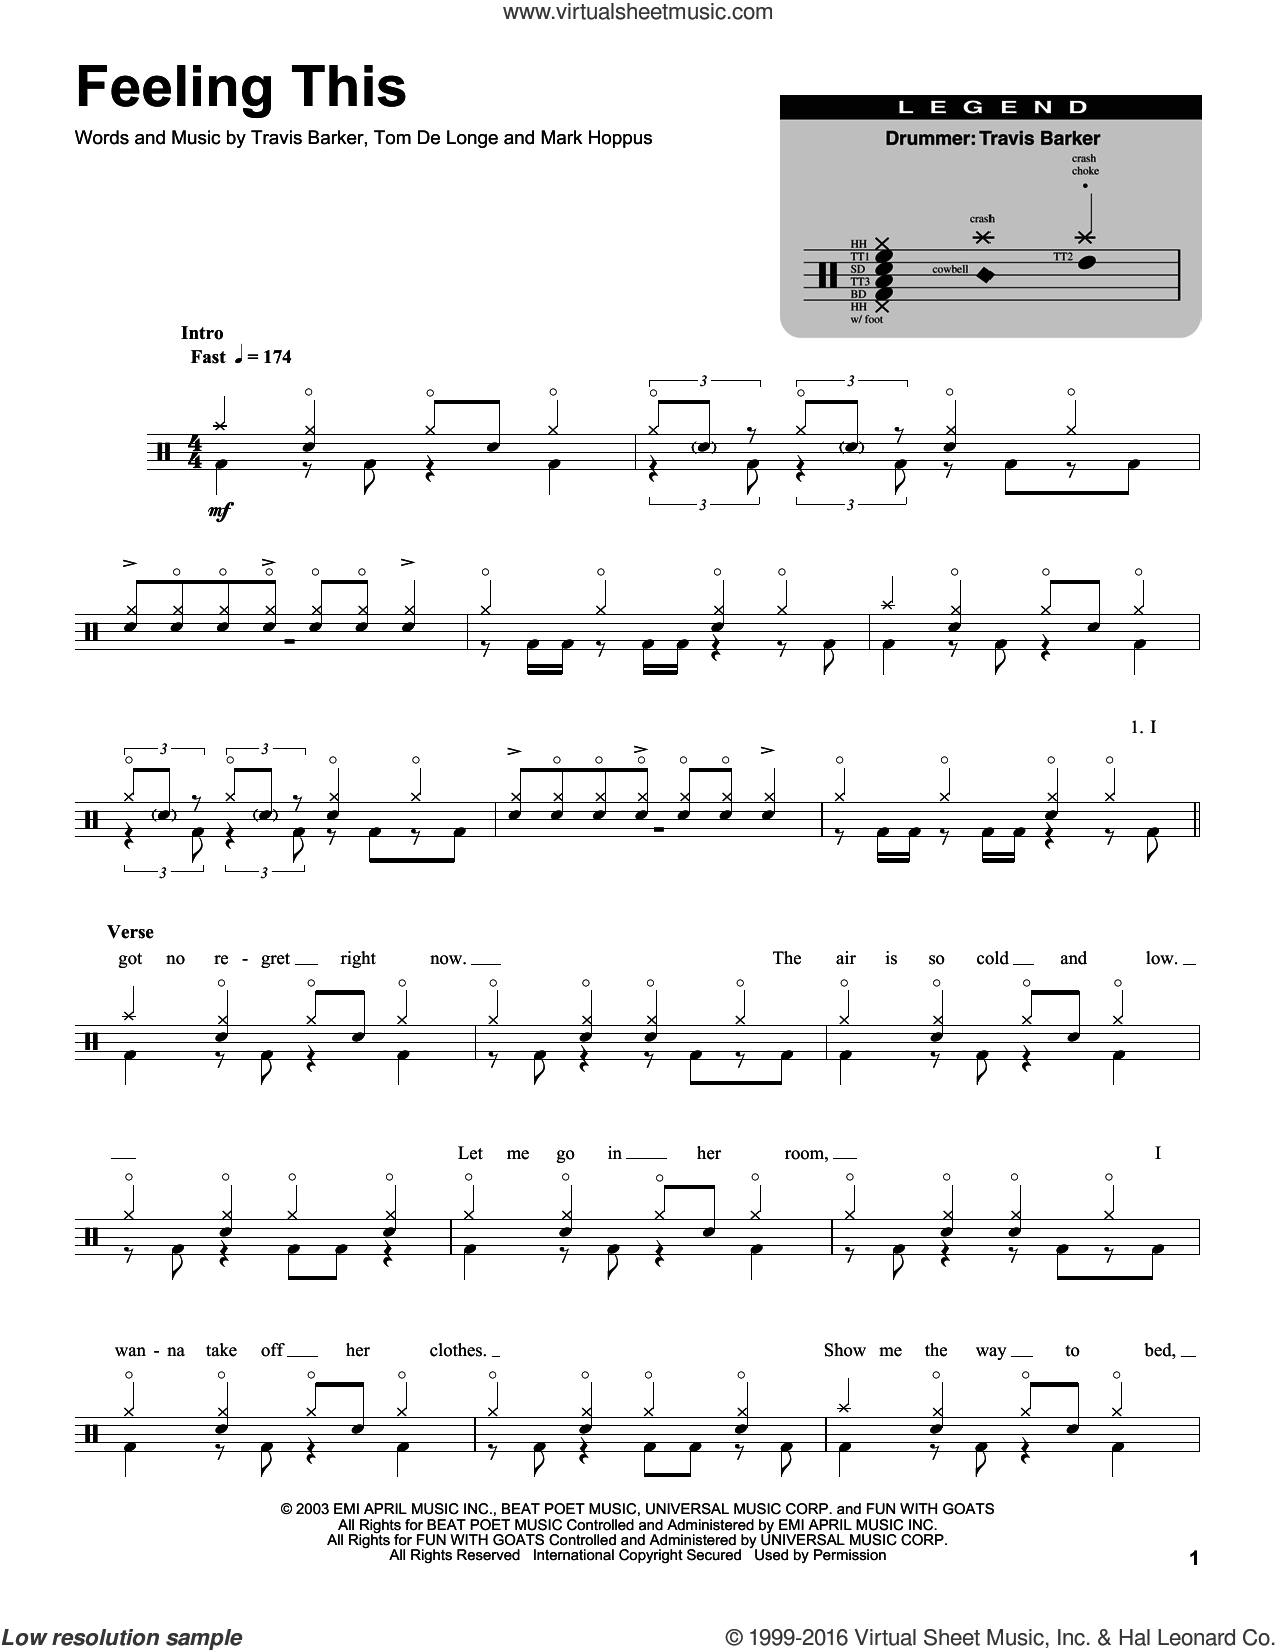 Feeling This sheet music for drums by Travis Barker, Mark Hoppus and Tom DeLonge. Score Image Preview.